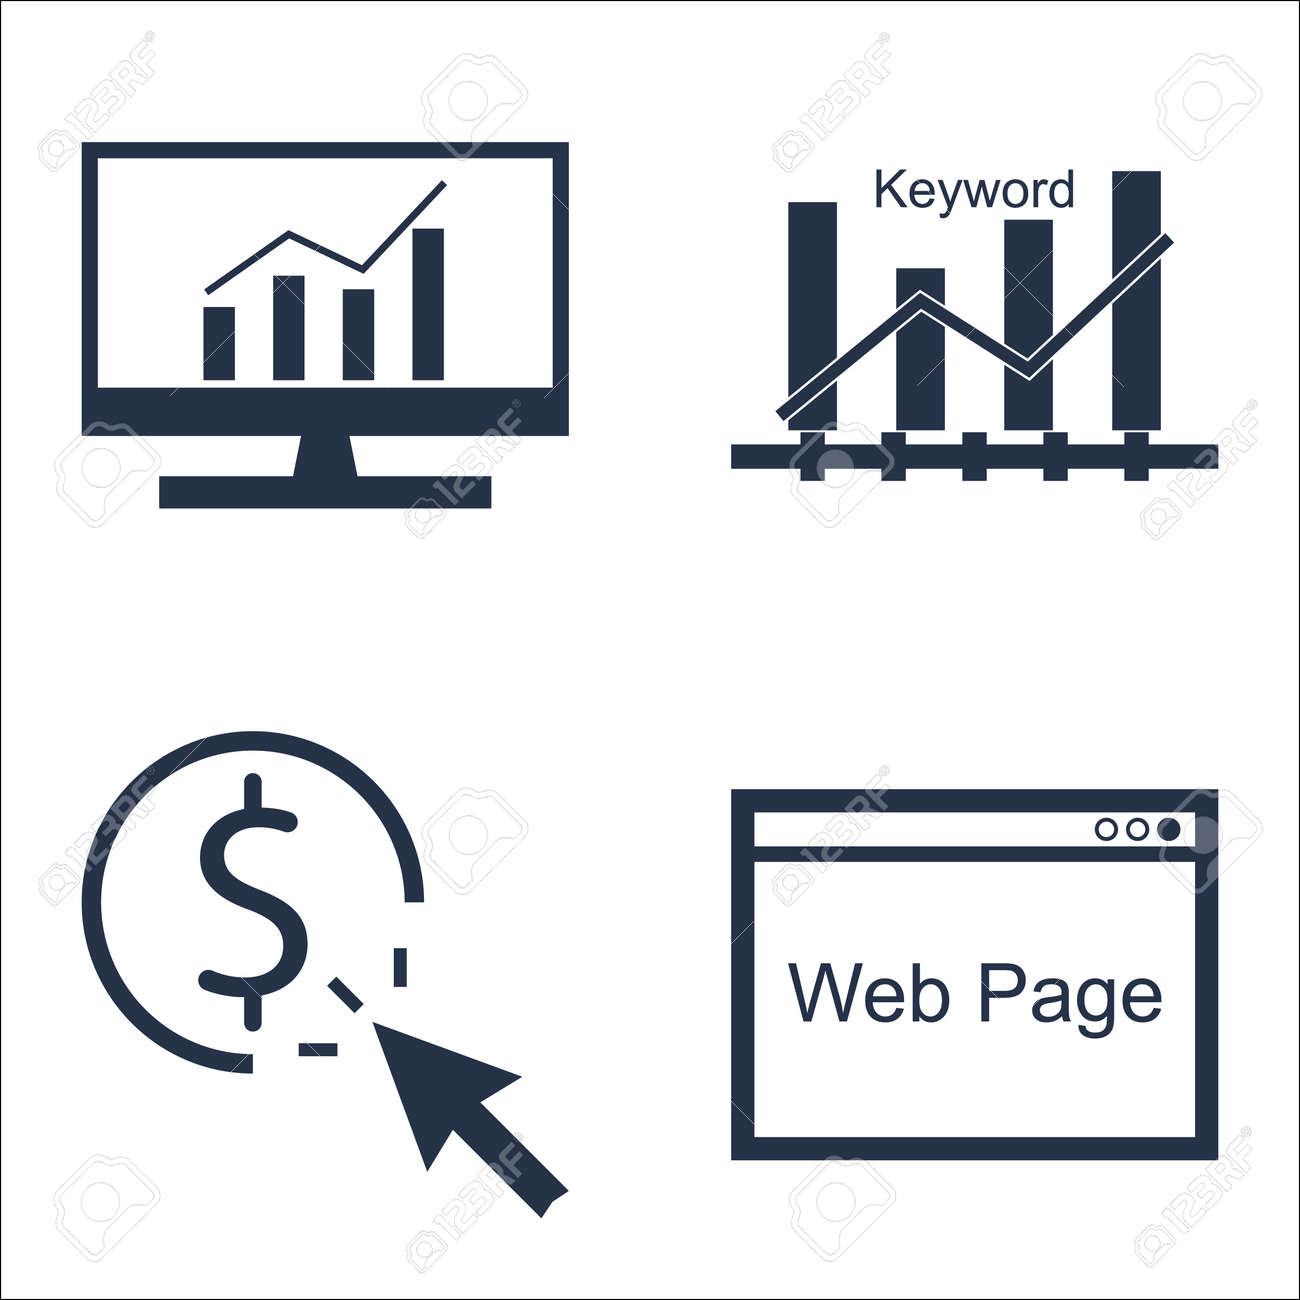 228810bc28 Archivio Fotografico - Set di SEO, di marketing e pubblicità Icone per  parola chiave classifica, pay per click, complete Analytics And More.